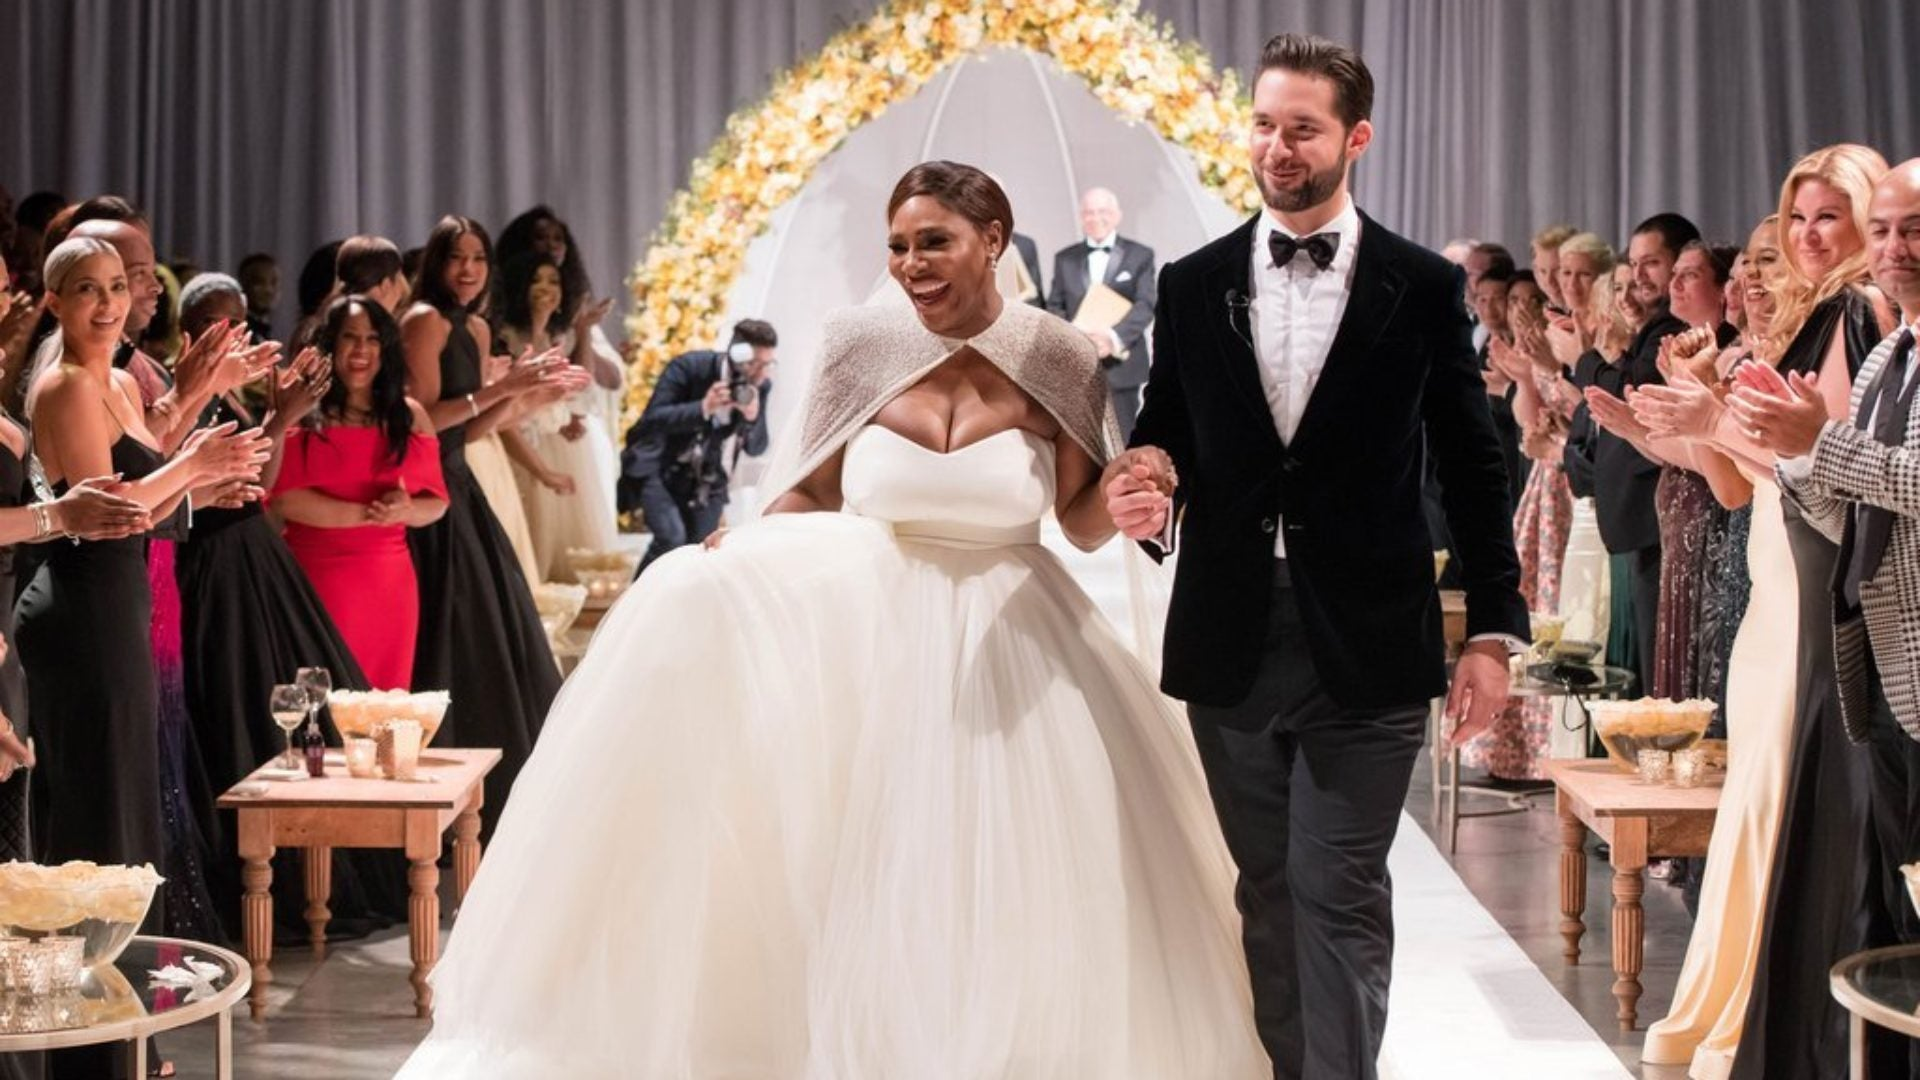 This Never-Before-Seen Photo Of Serena Williams and Husband Alexis Dancing At Their Wedding Will Make Your Day